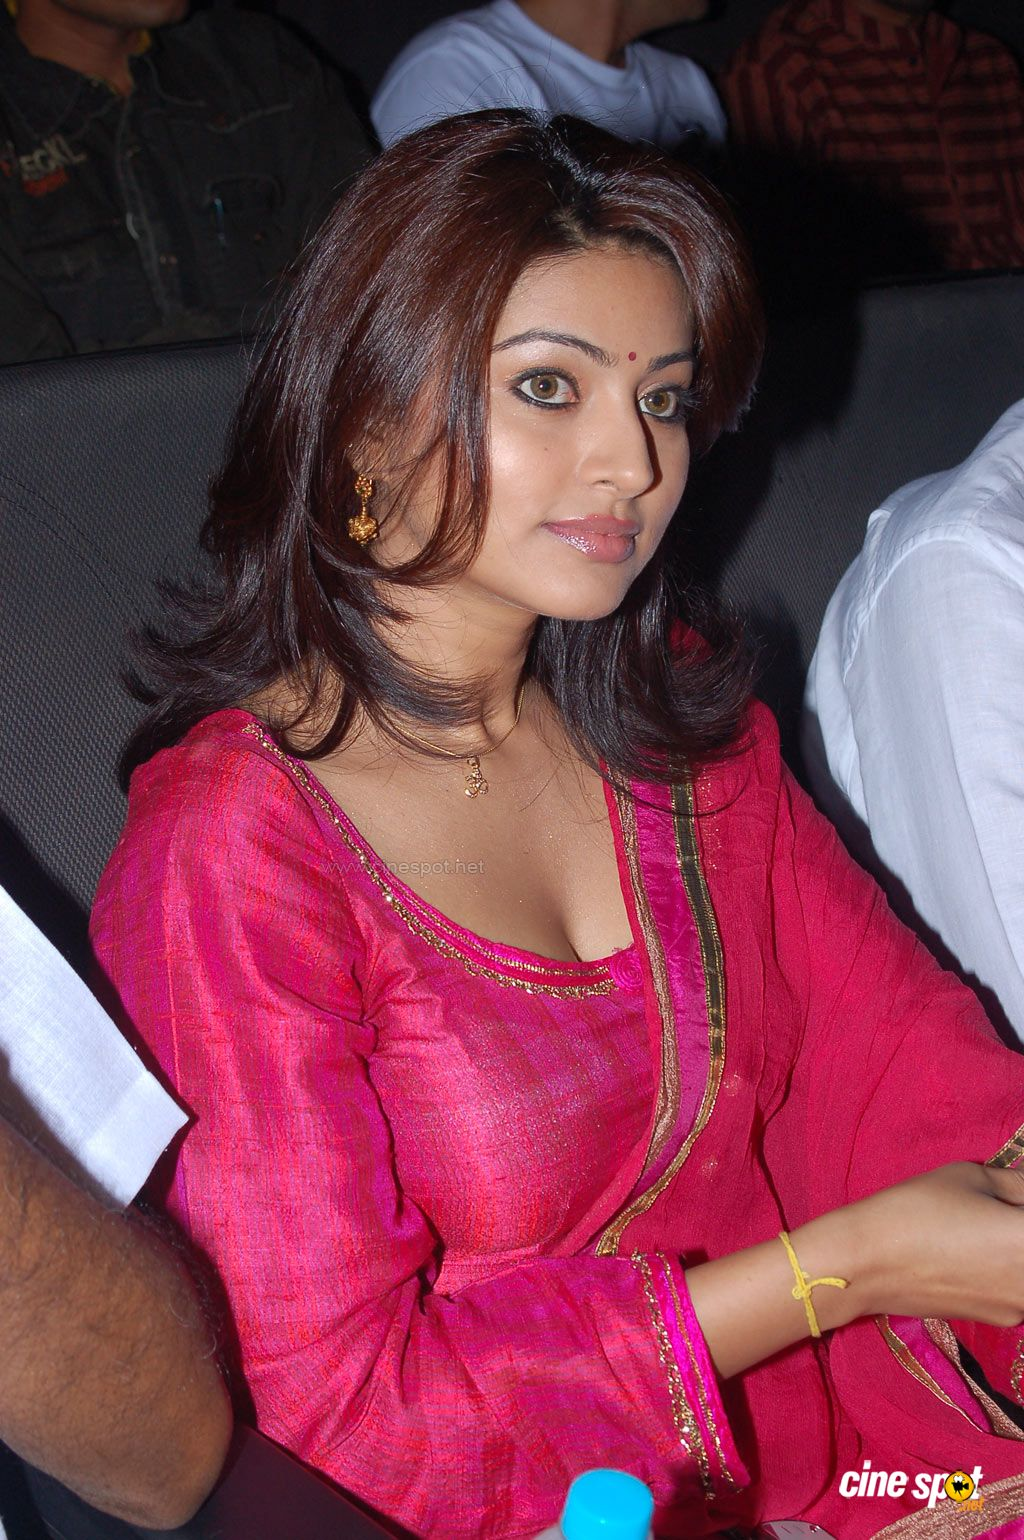 sneha-hot-naked-photos-gallery-roulette-amateur-porn